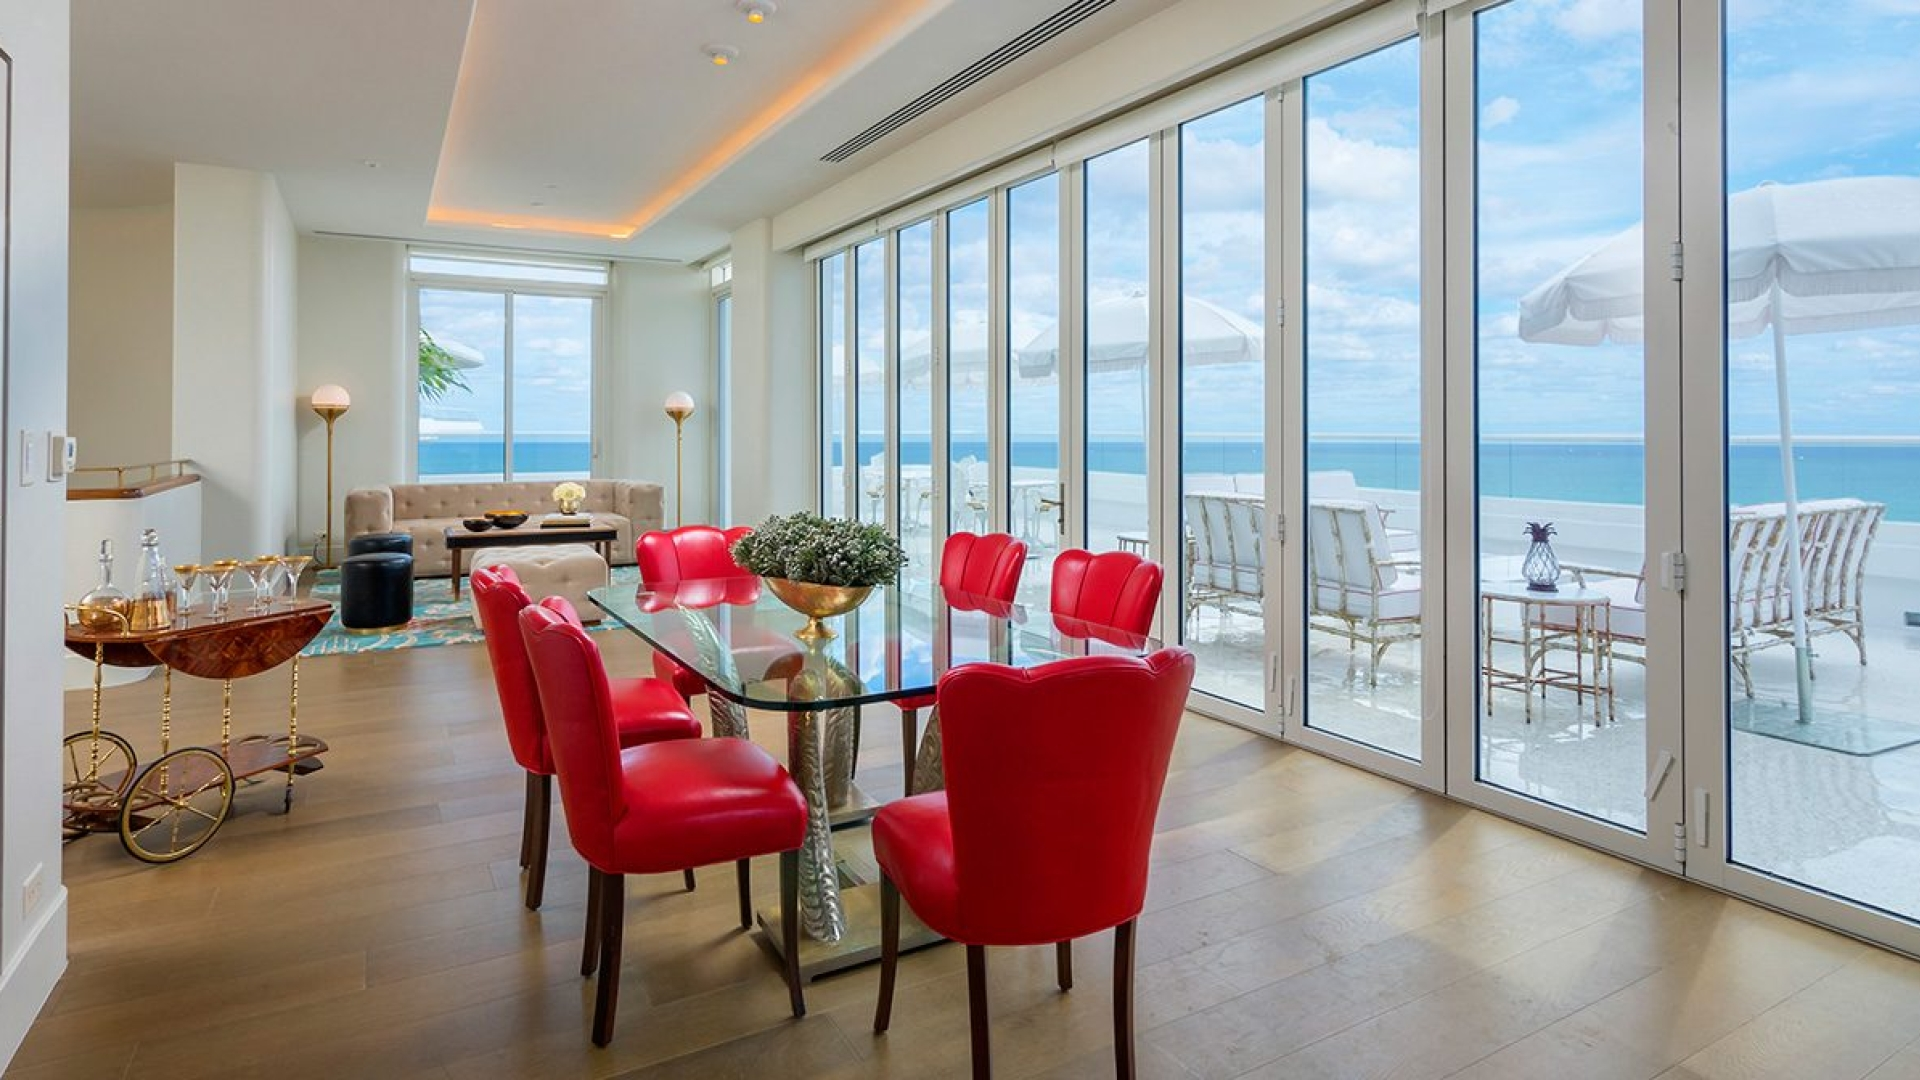 dining area in hotel penthouse with a wall of windows